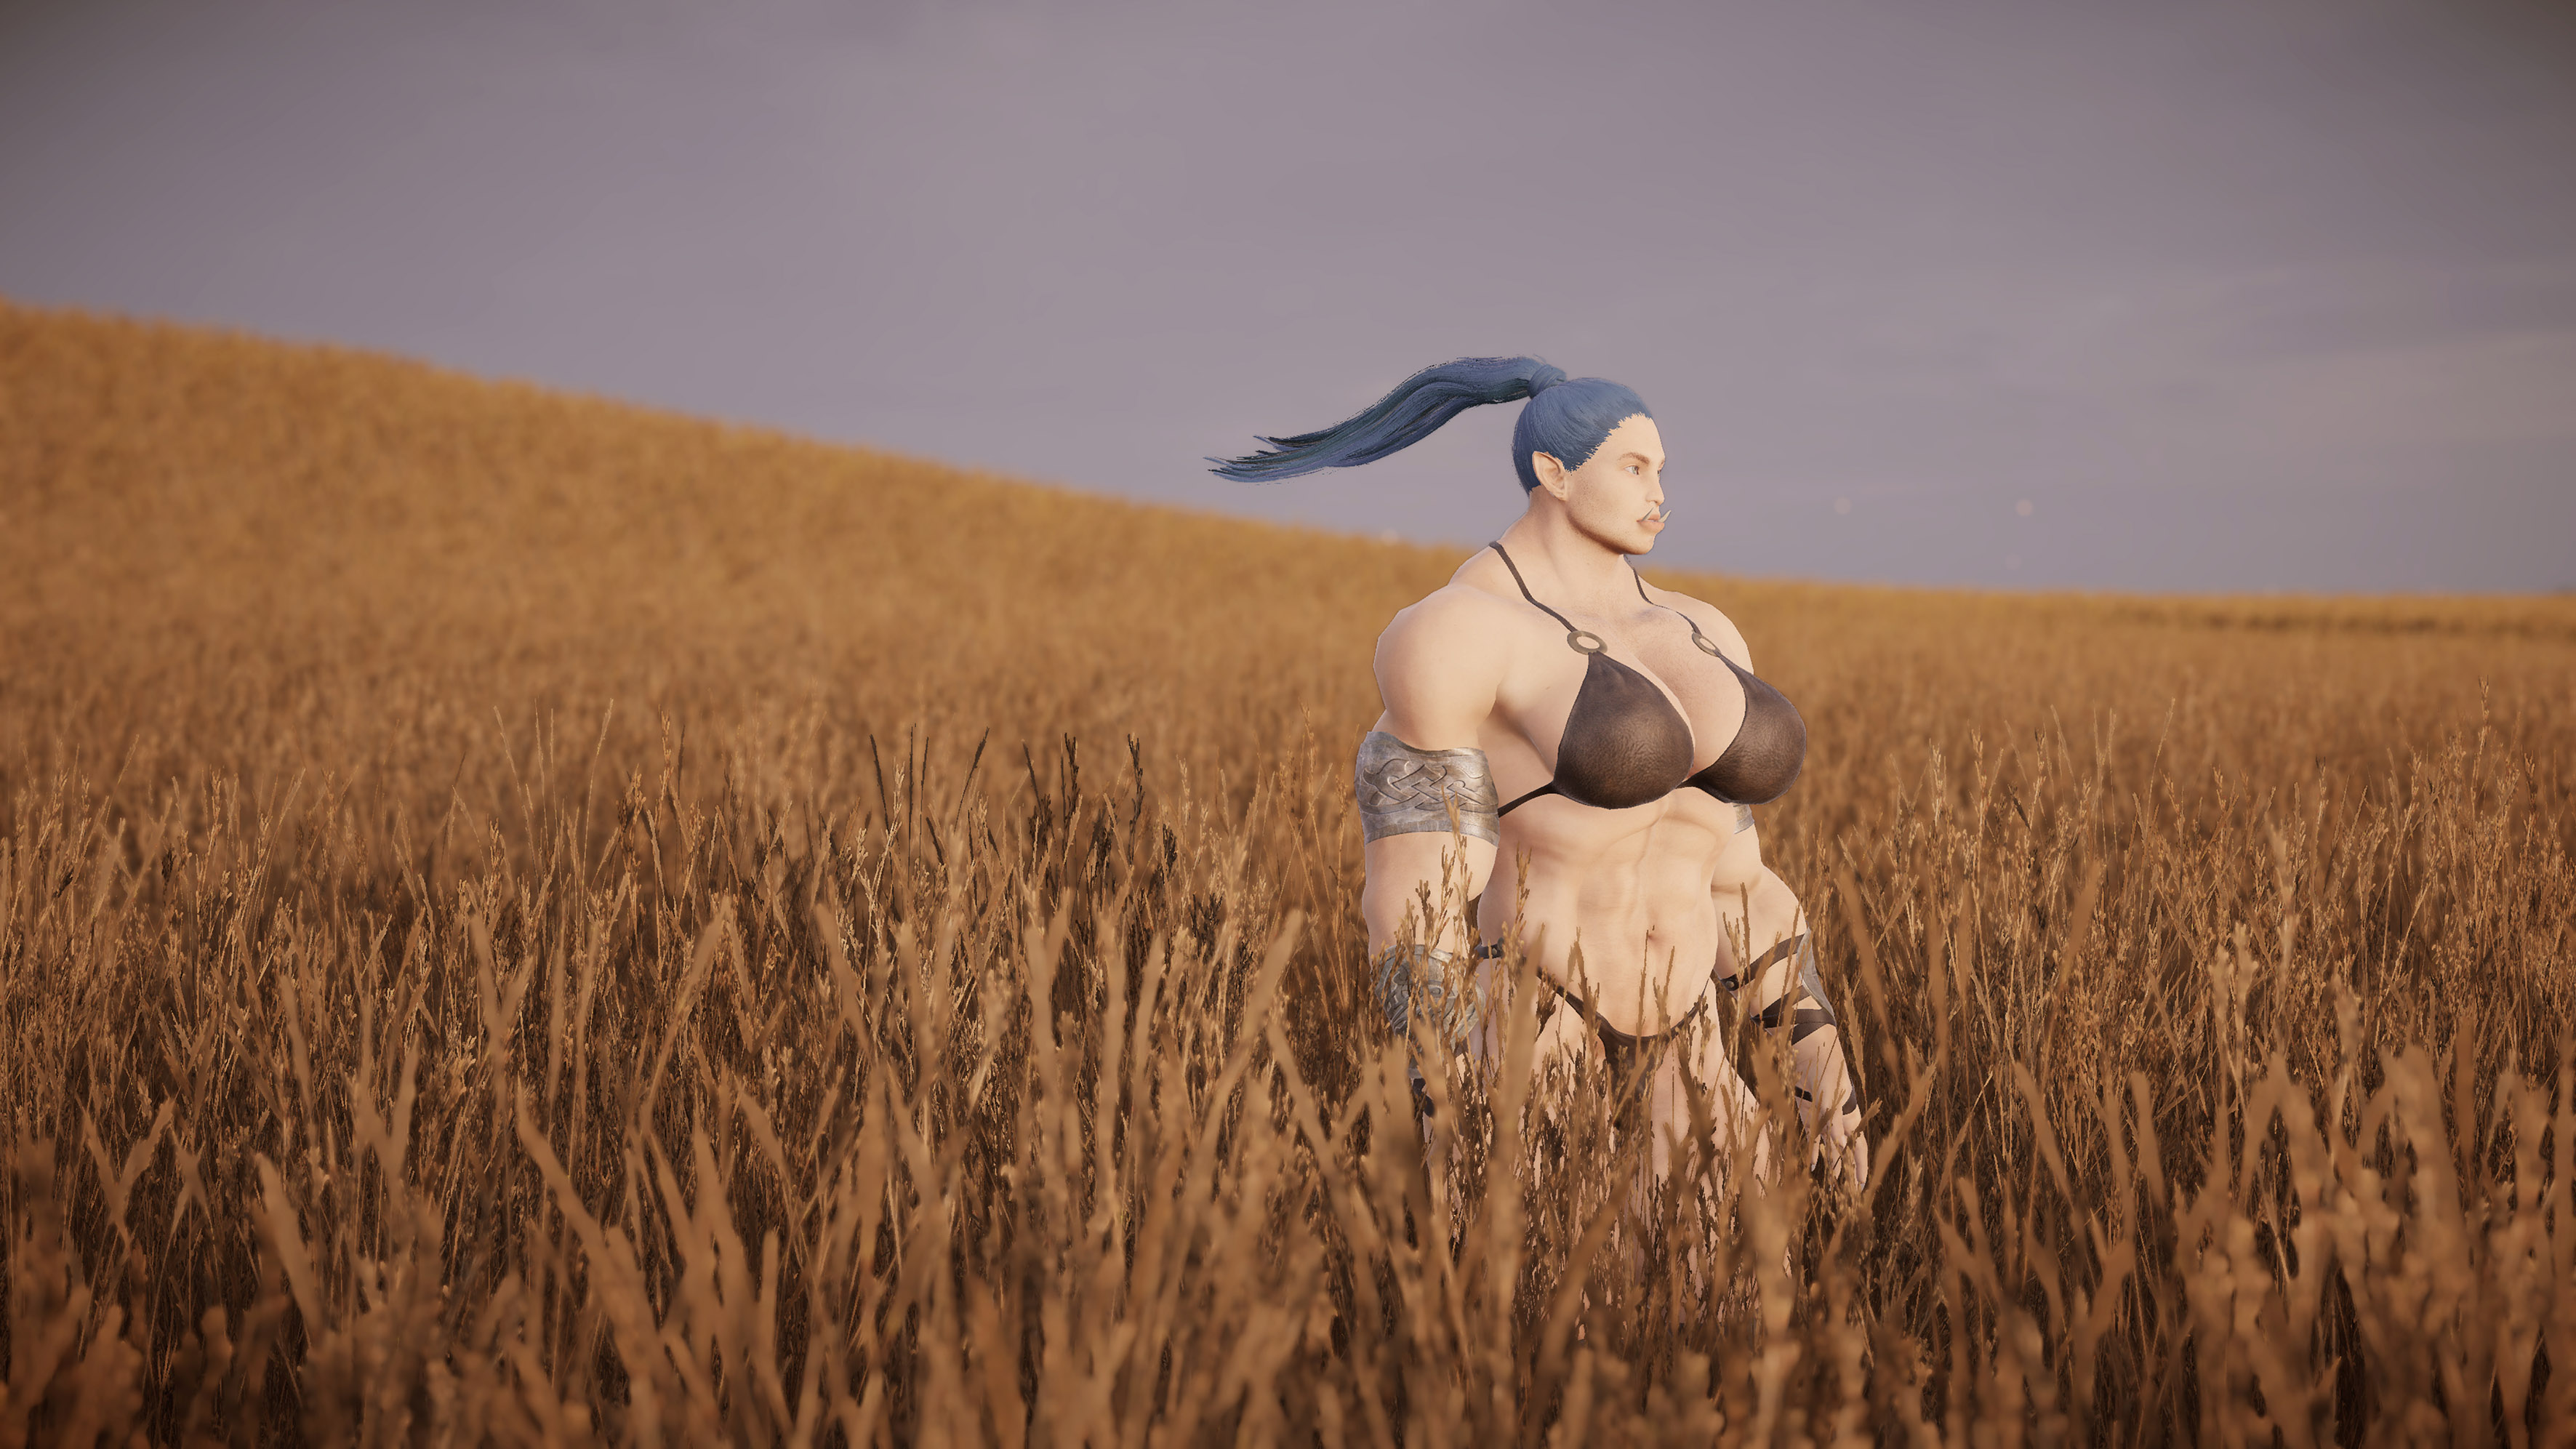 Theo Triantafyllidis Pastoral (Video Game), 2019, Screenshot Courtesy the Artist and The Breeder Gallery, Athens